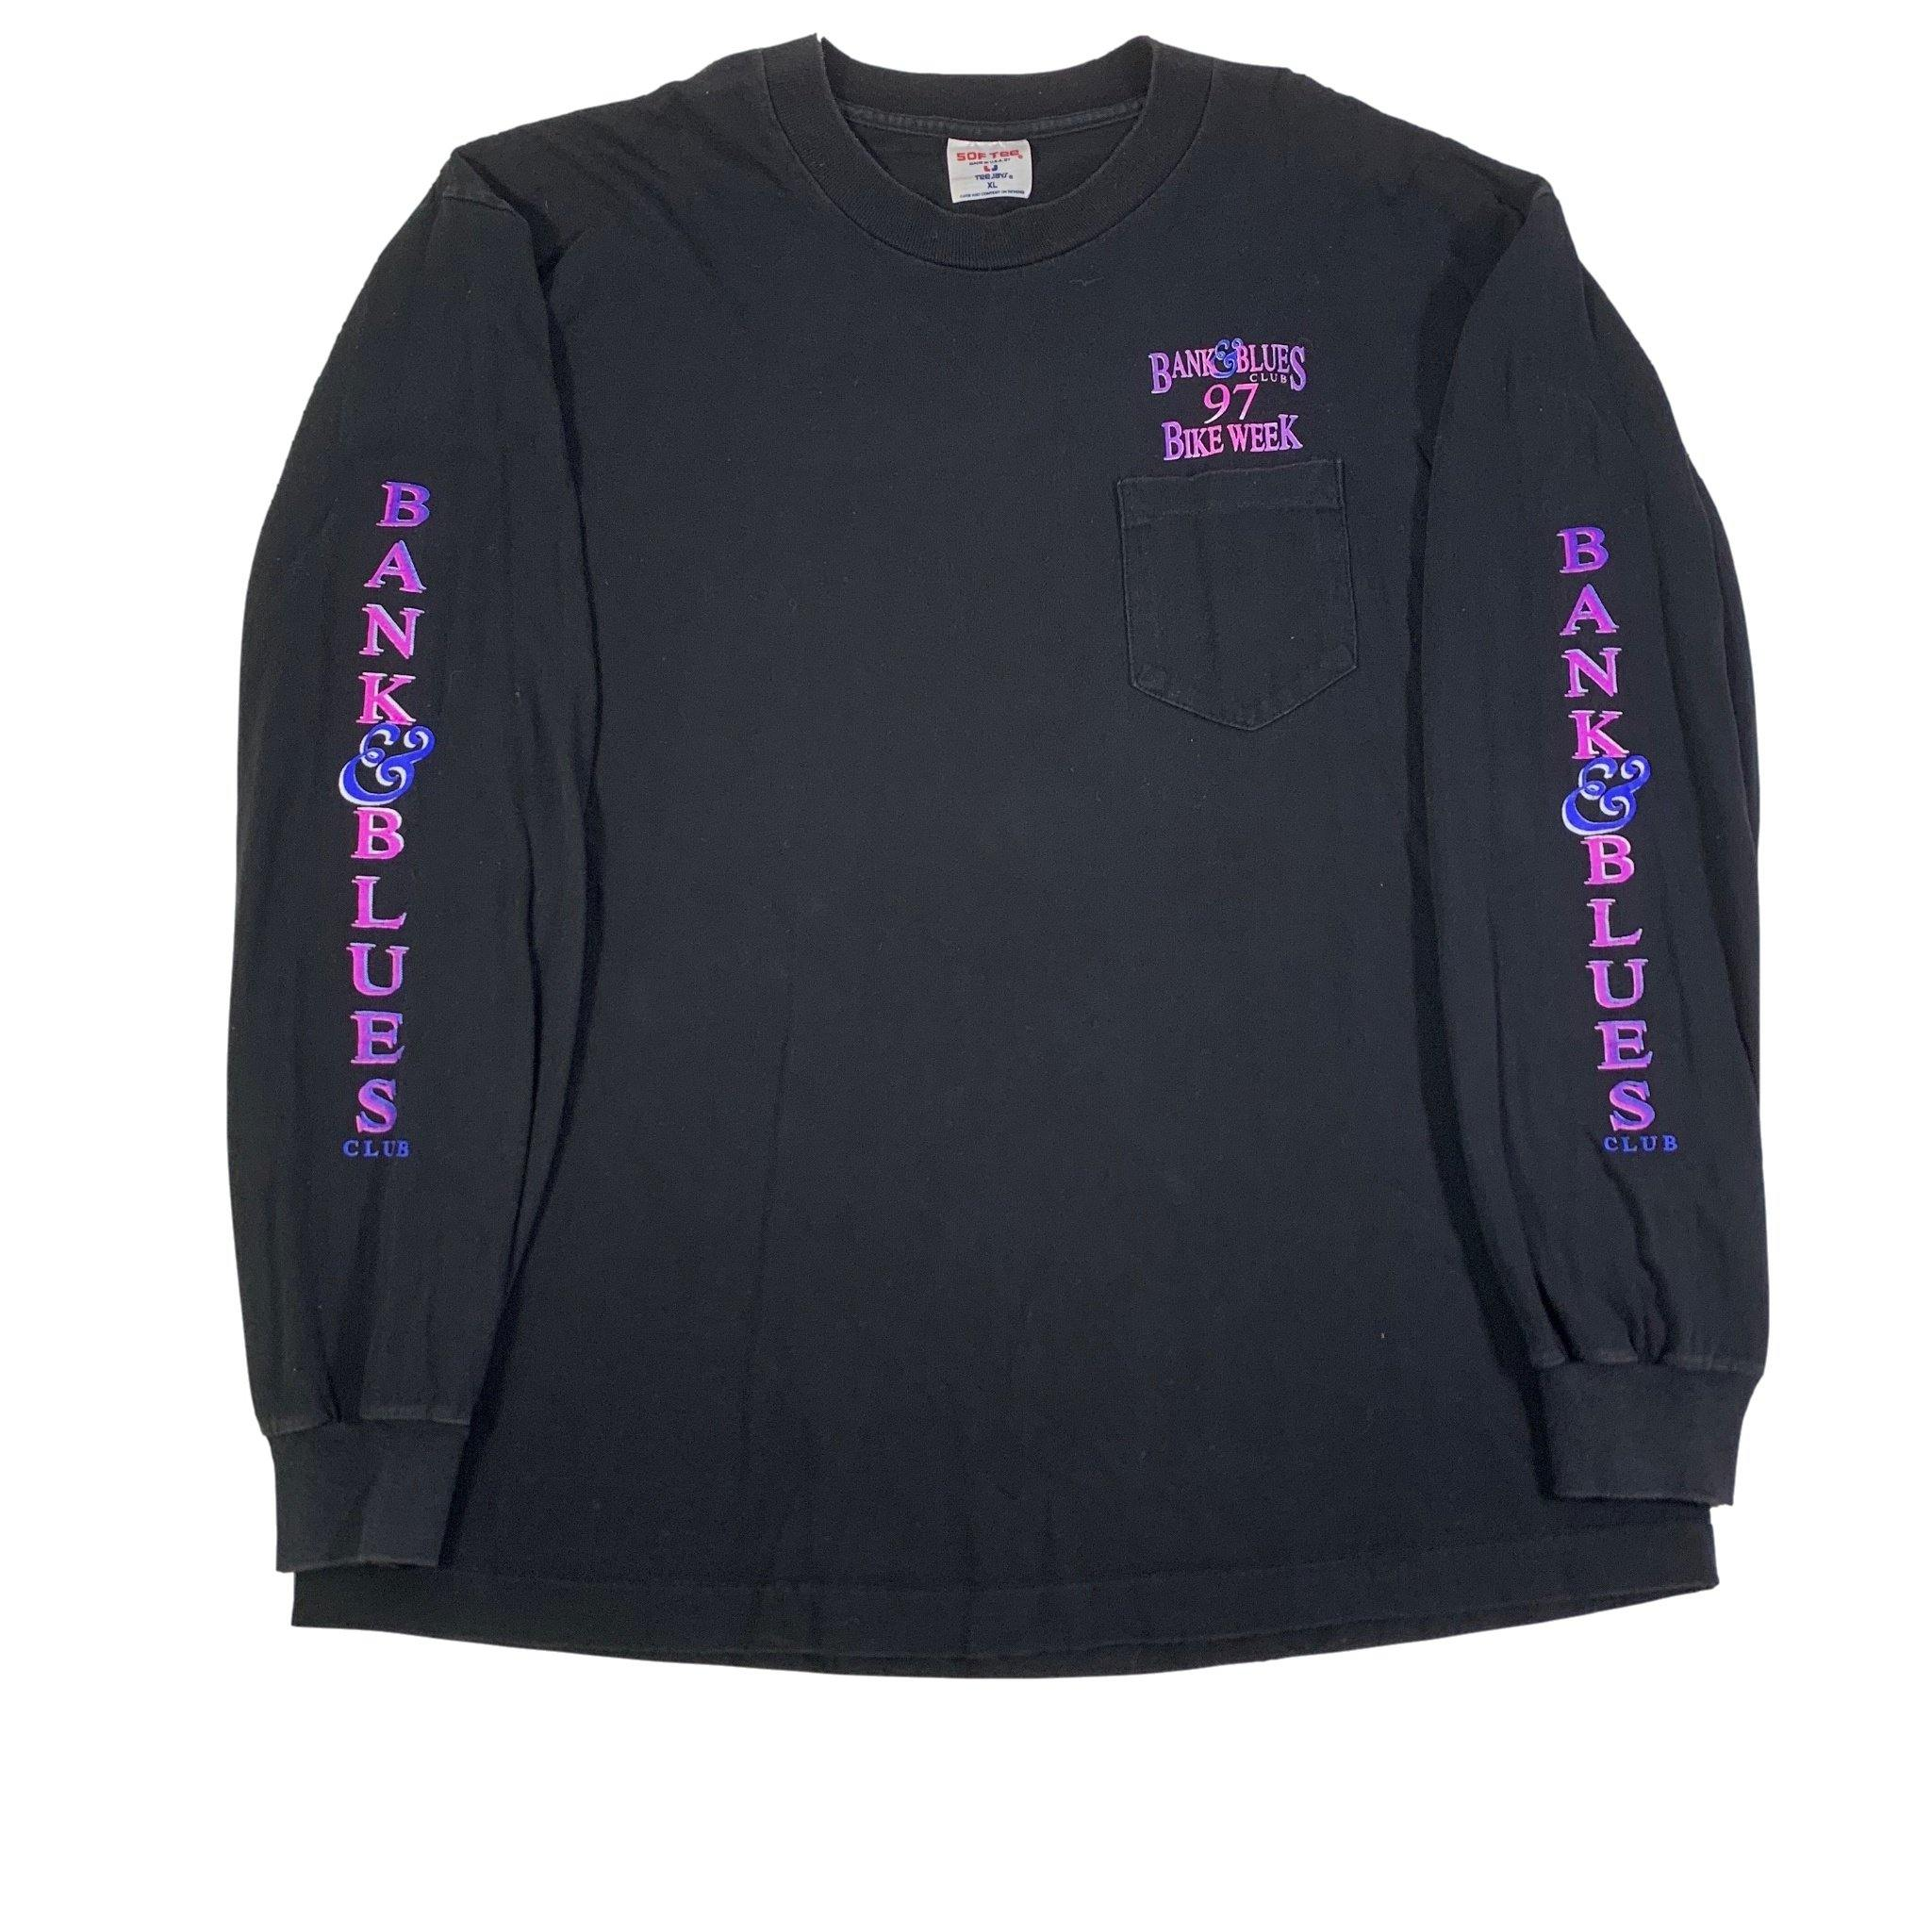 "Bank & Blues Club '97 ""Bike Week"" Long Sleeve Shirt"